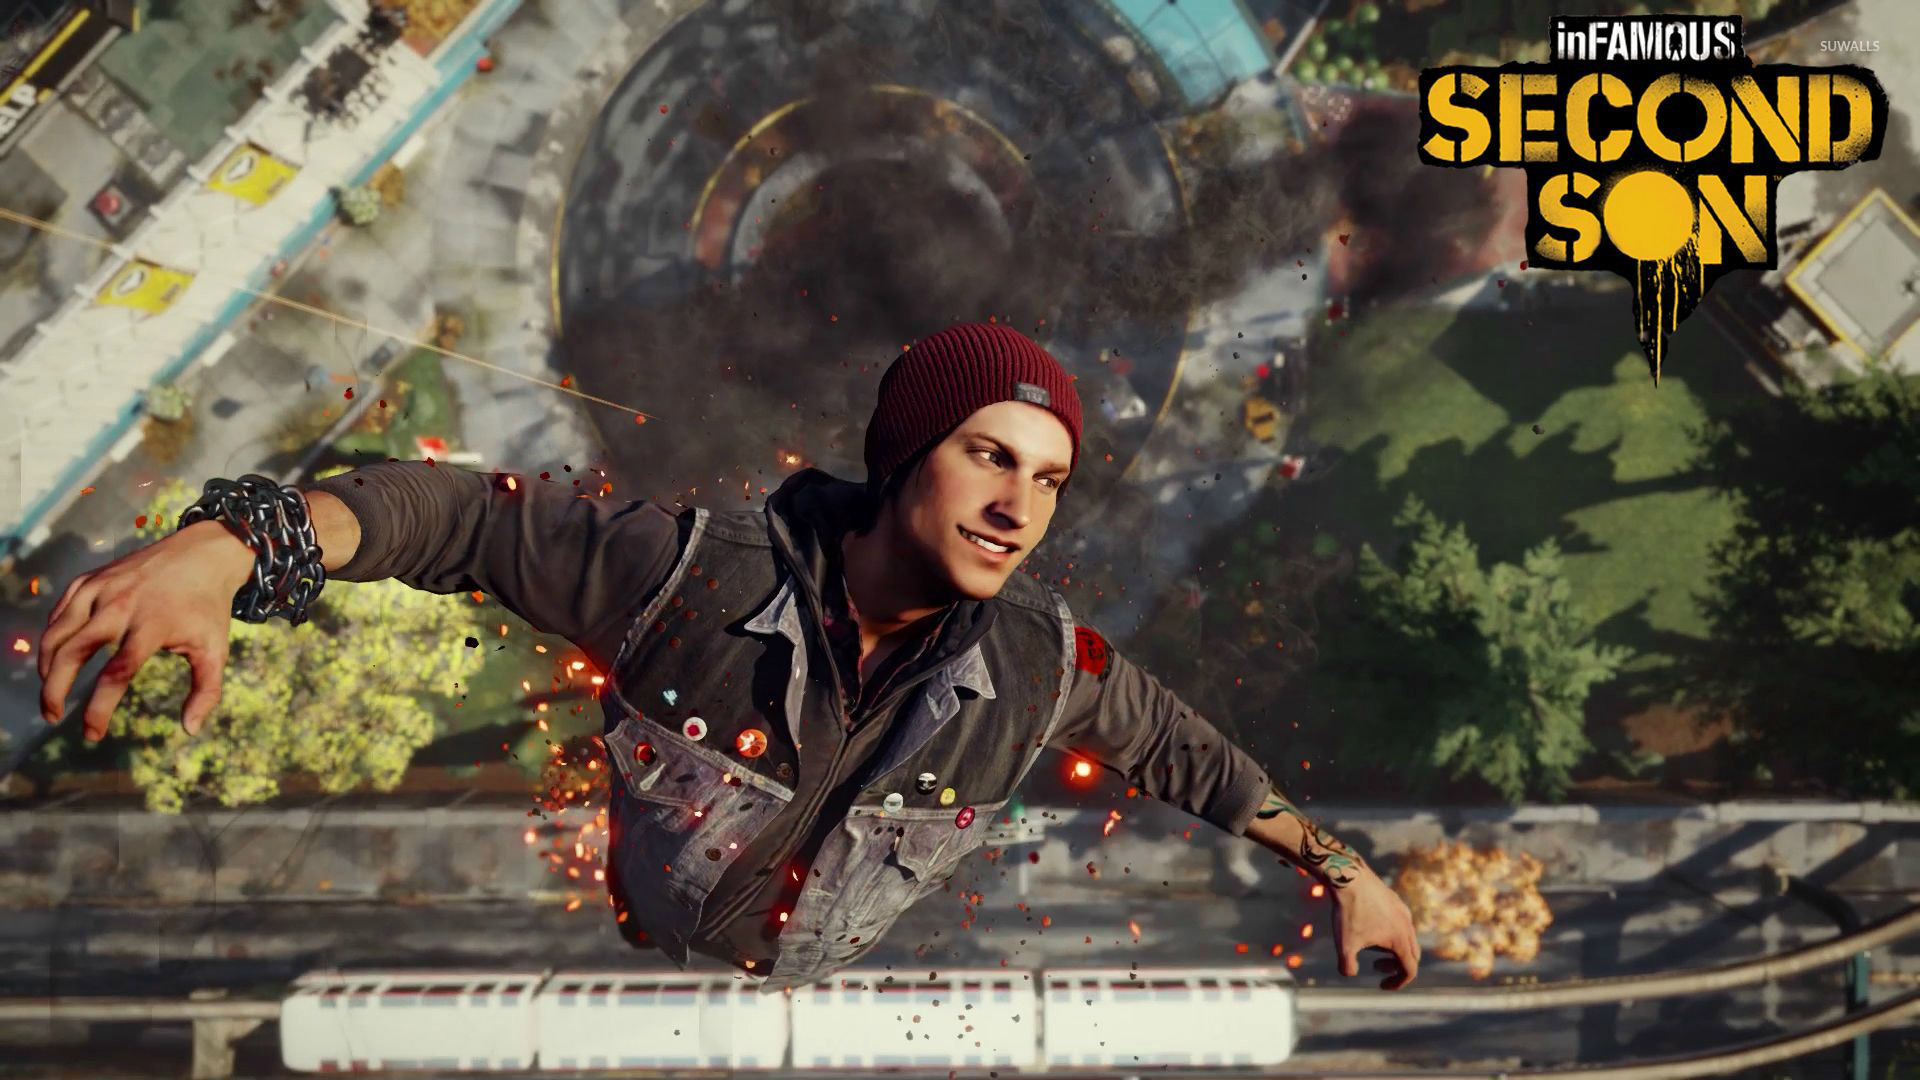 Delsin Rower Infamous Second Son Wallpaper Game Wallpapers